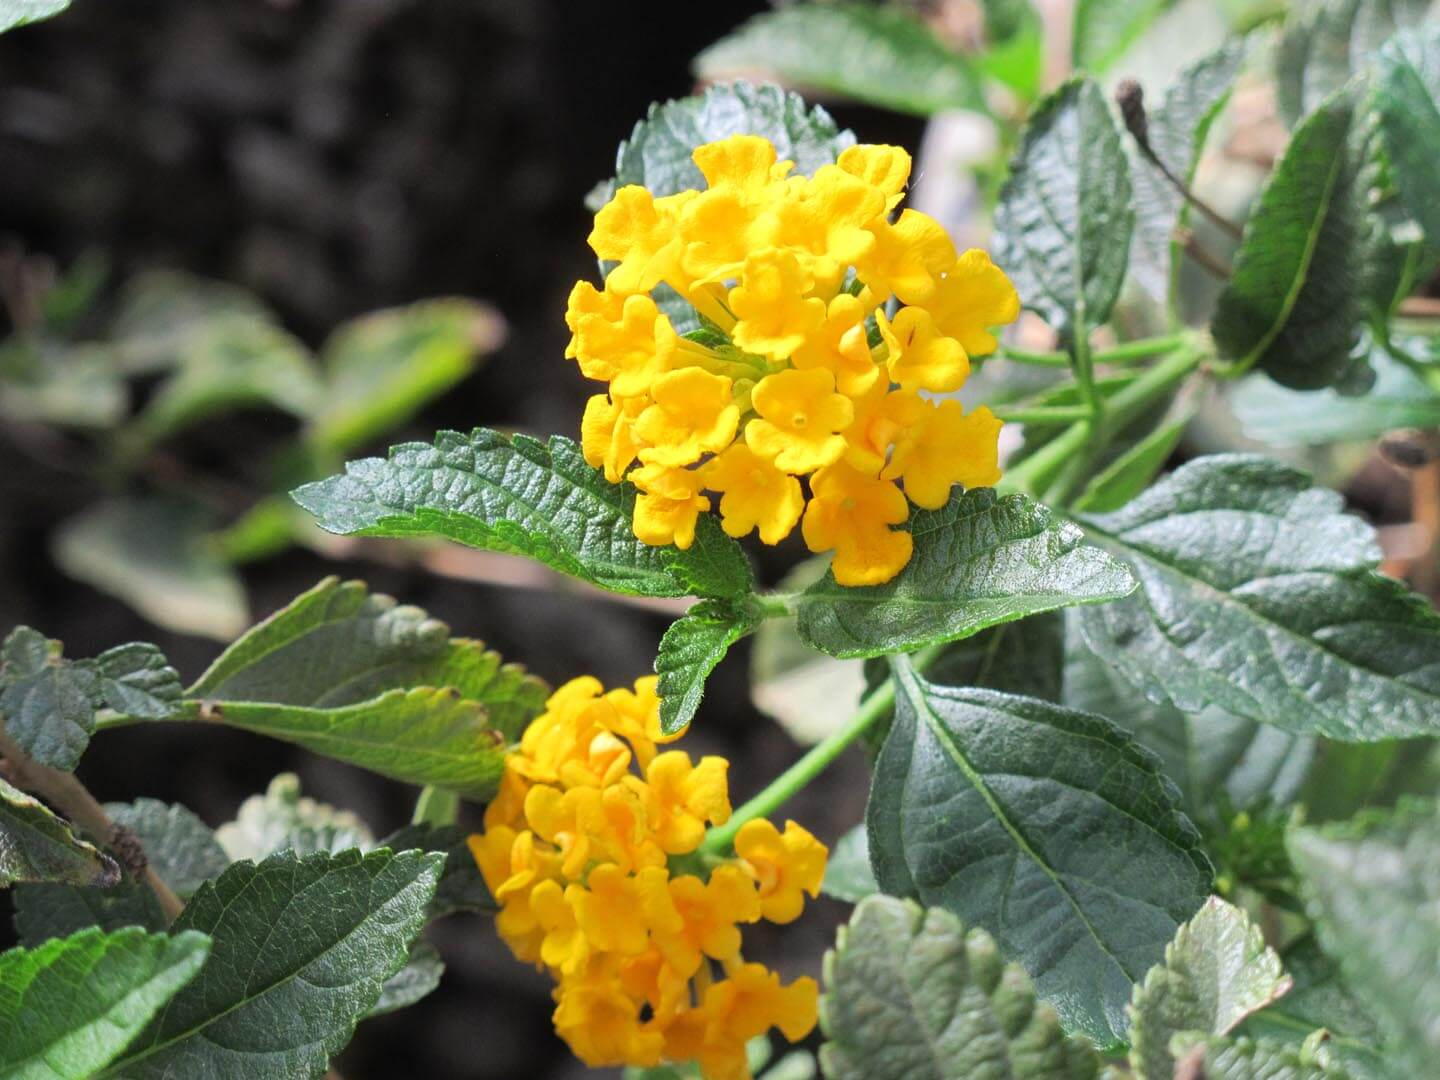 Lantana is a hanging plant originating from the continental United States in the tropics.